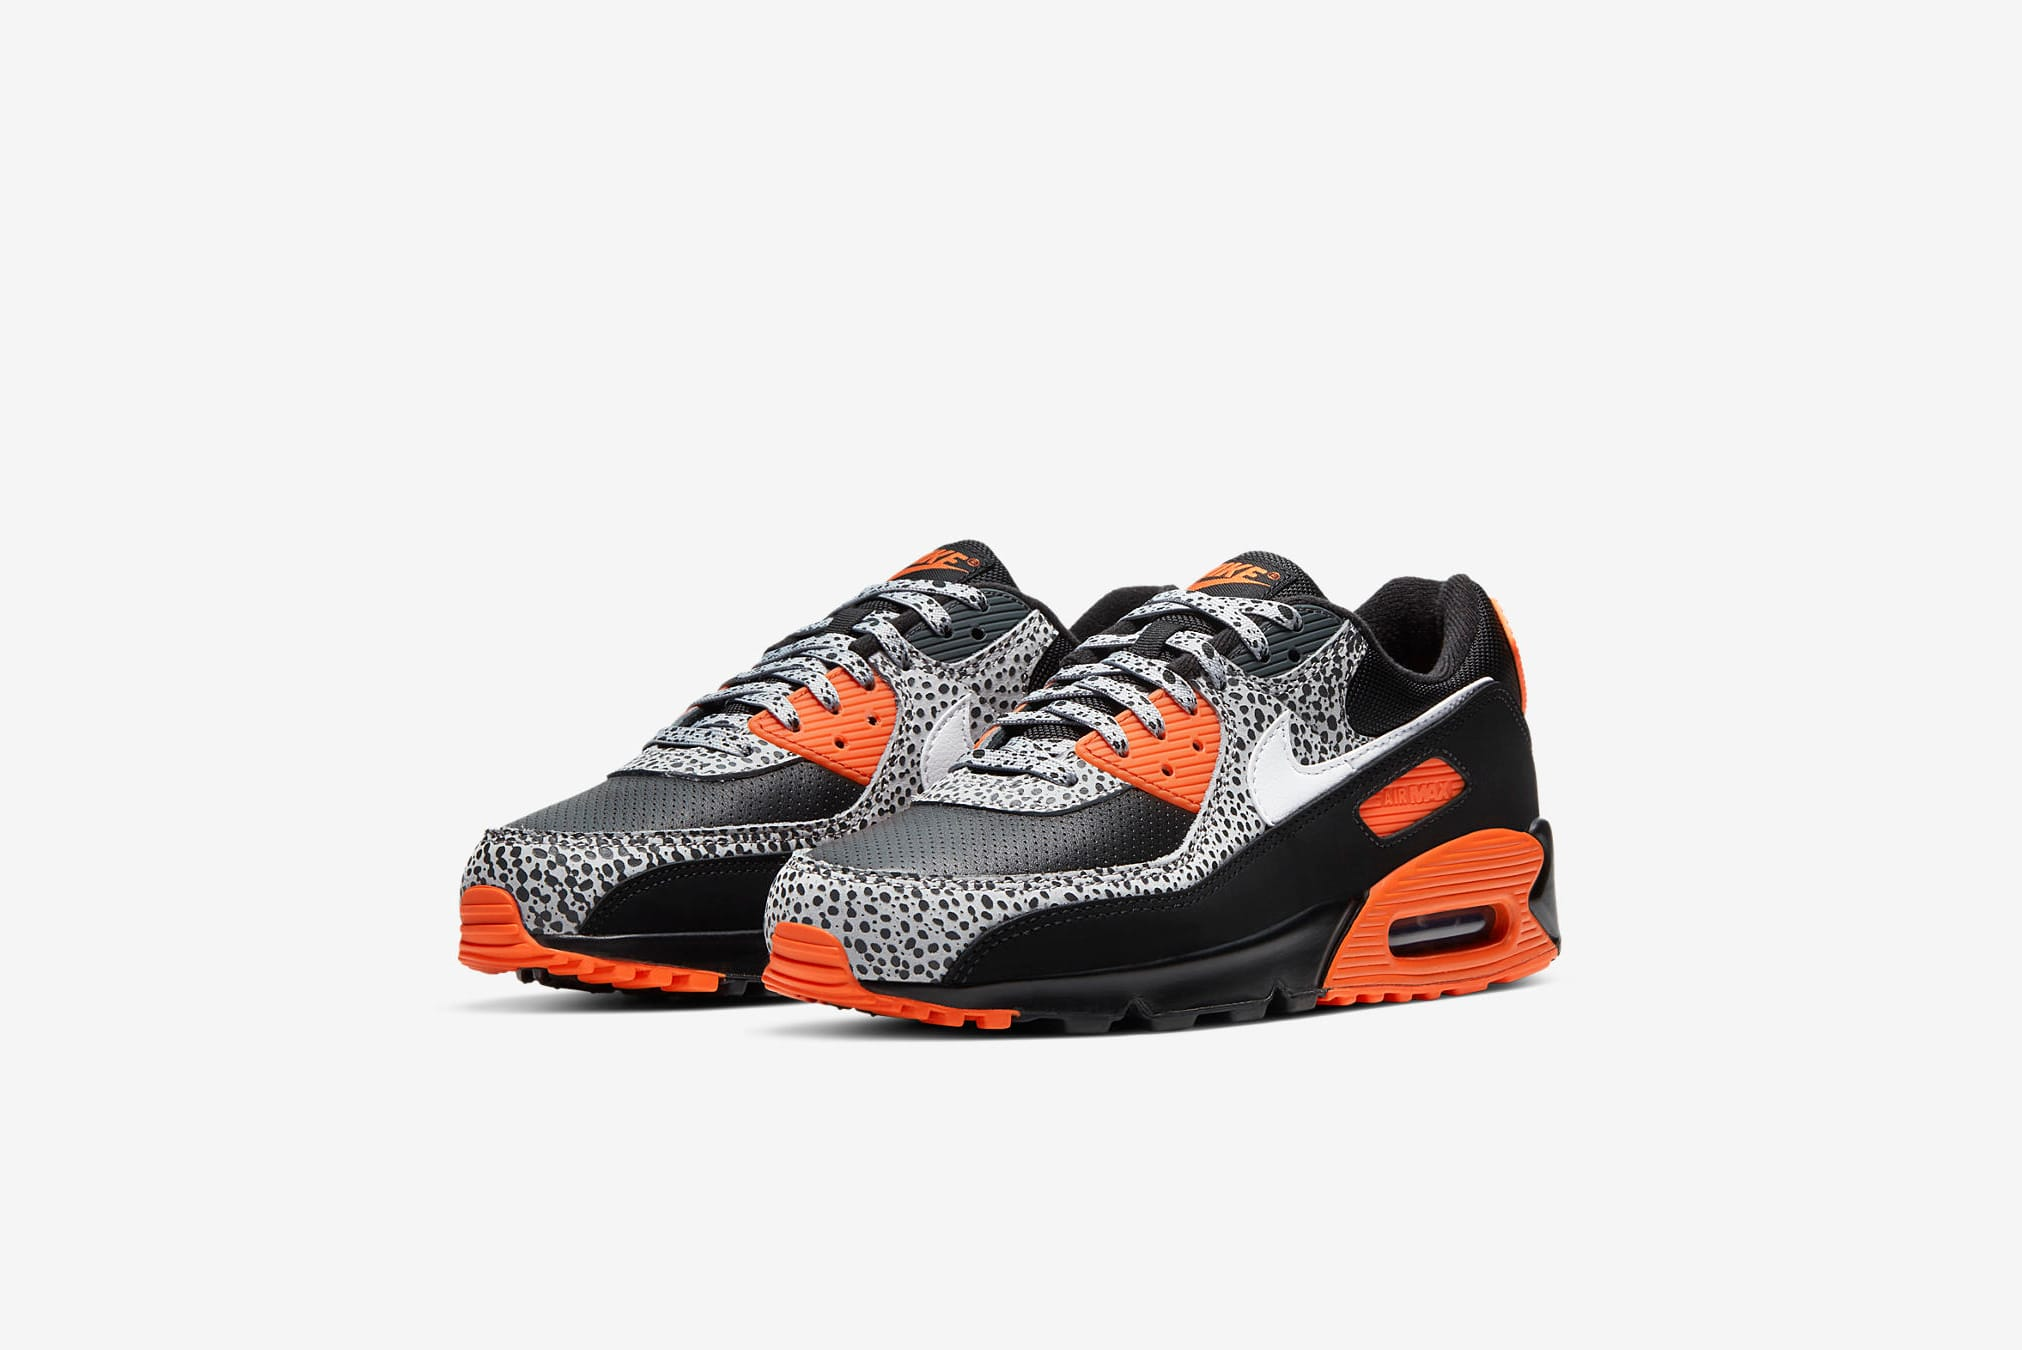 Nike Air Max 90 Safari - DA5427-001